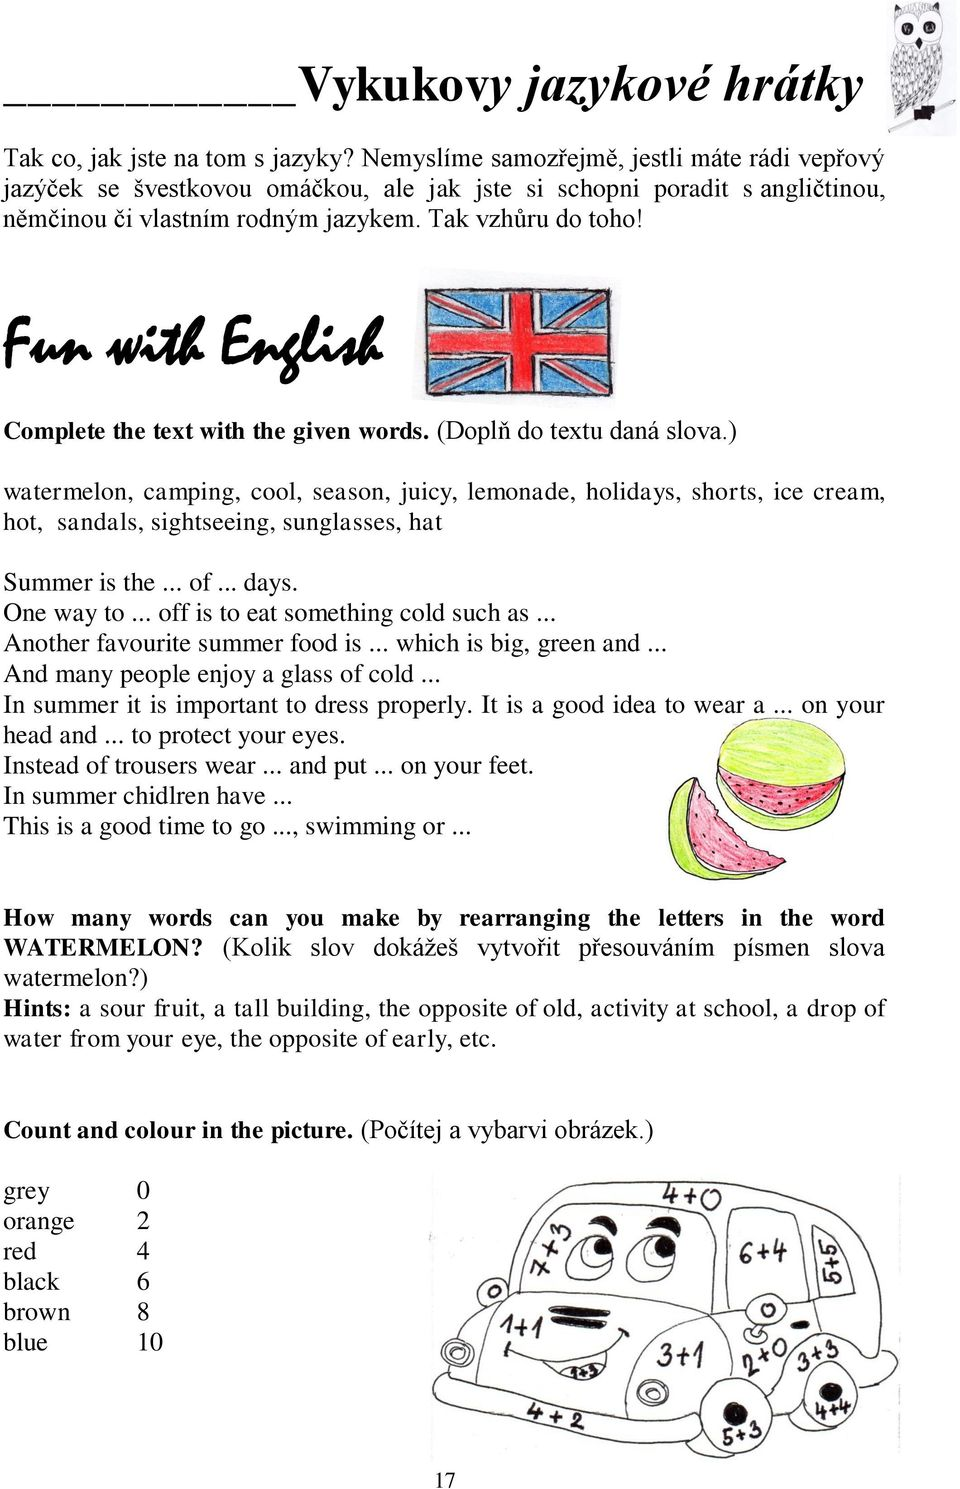 Fun with English Complete the text with the given words. (Doplň do textu daná slova.